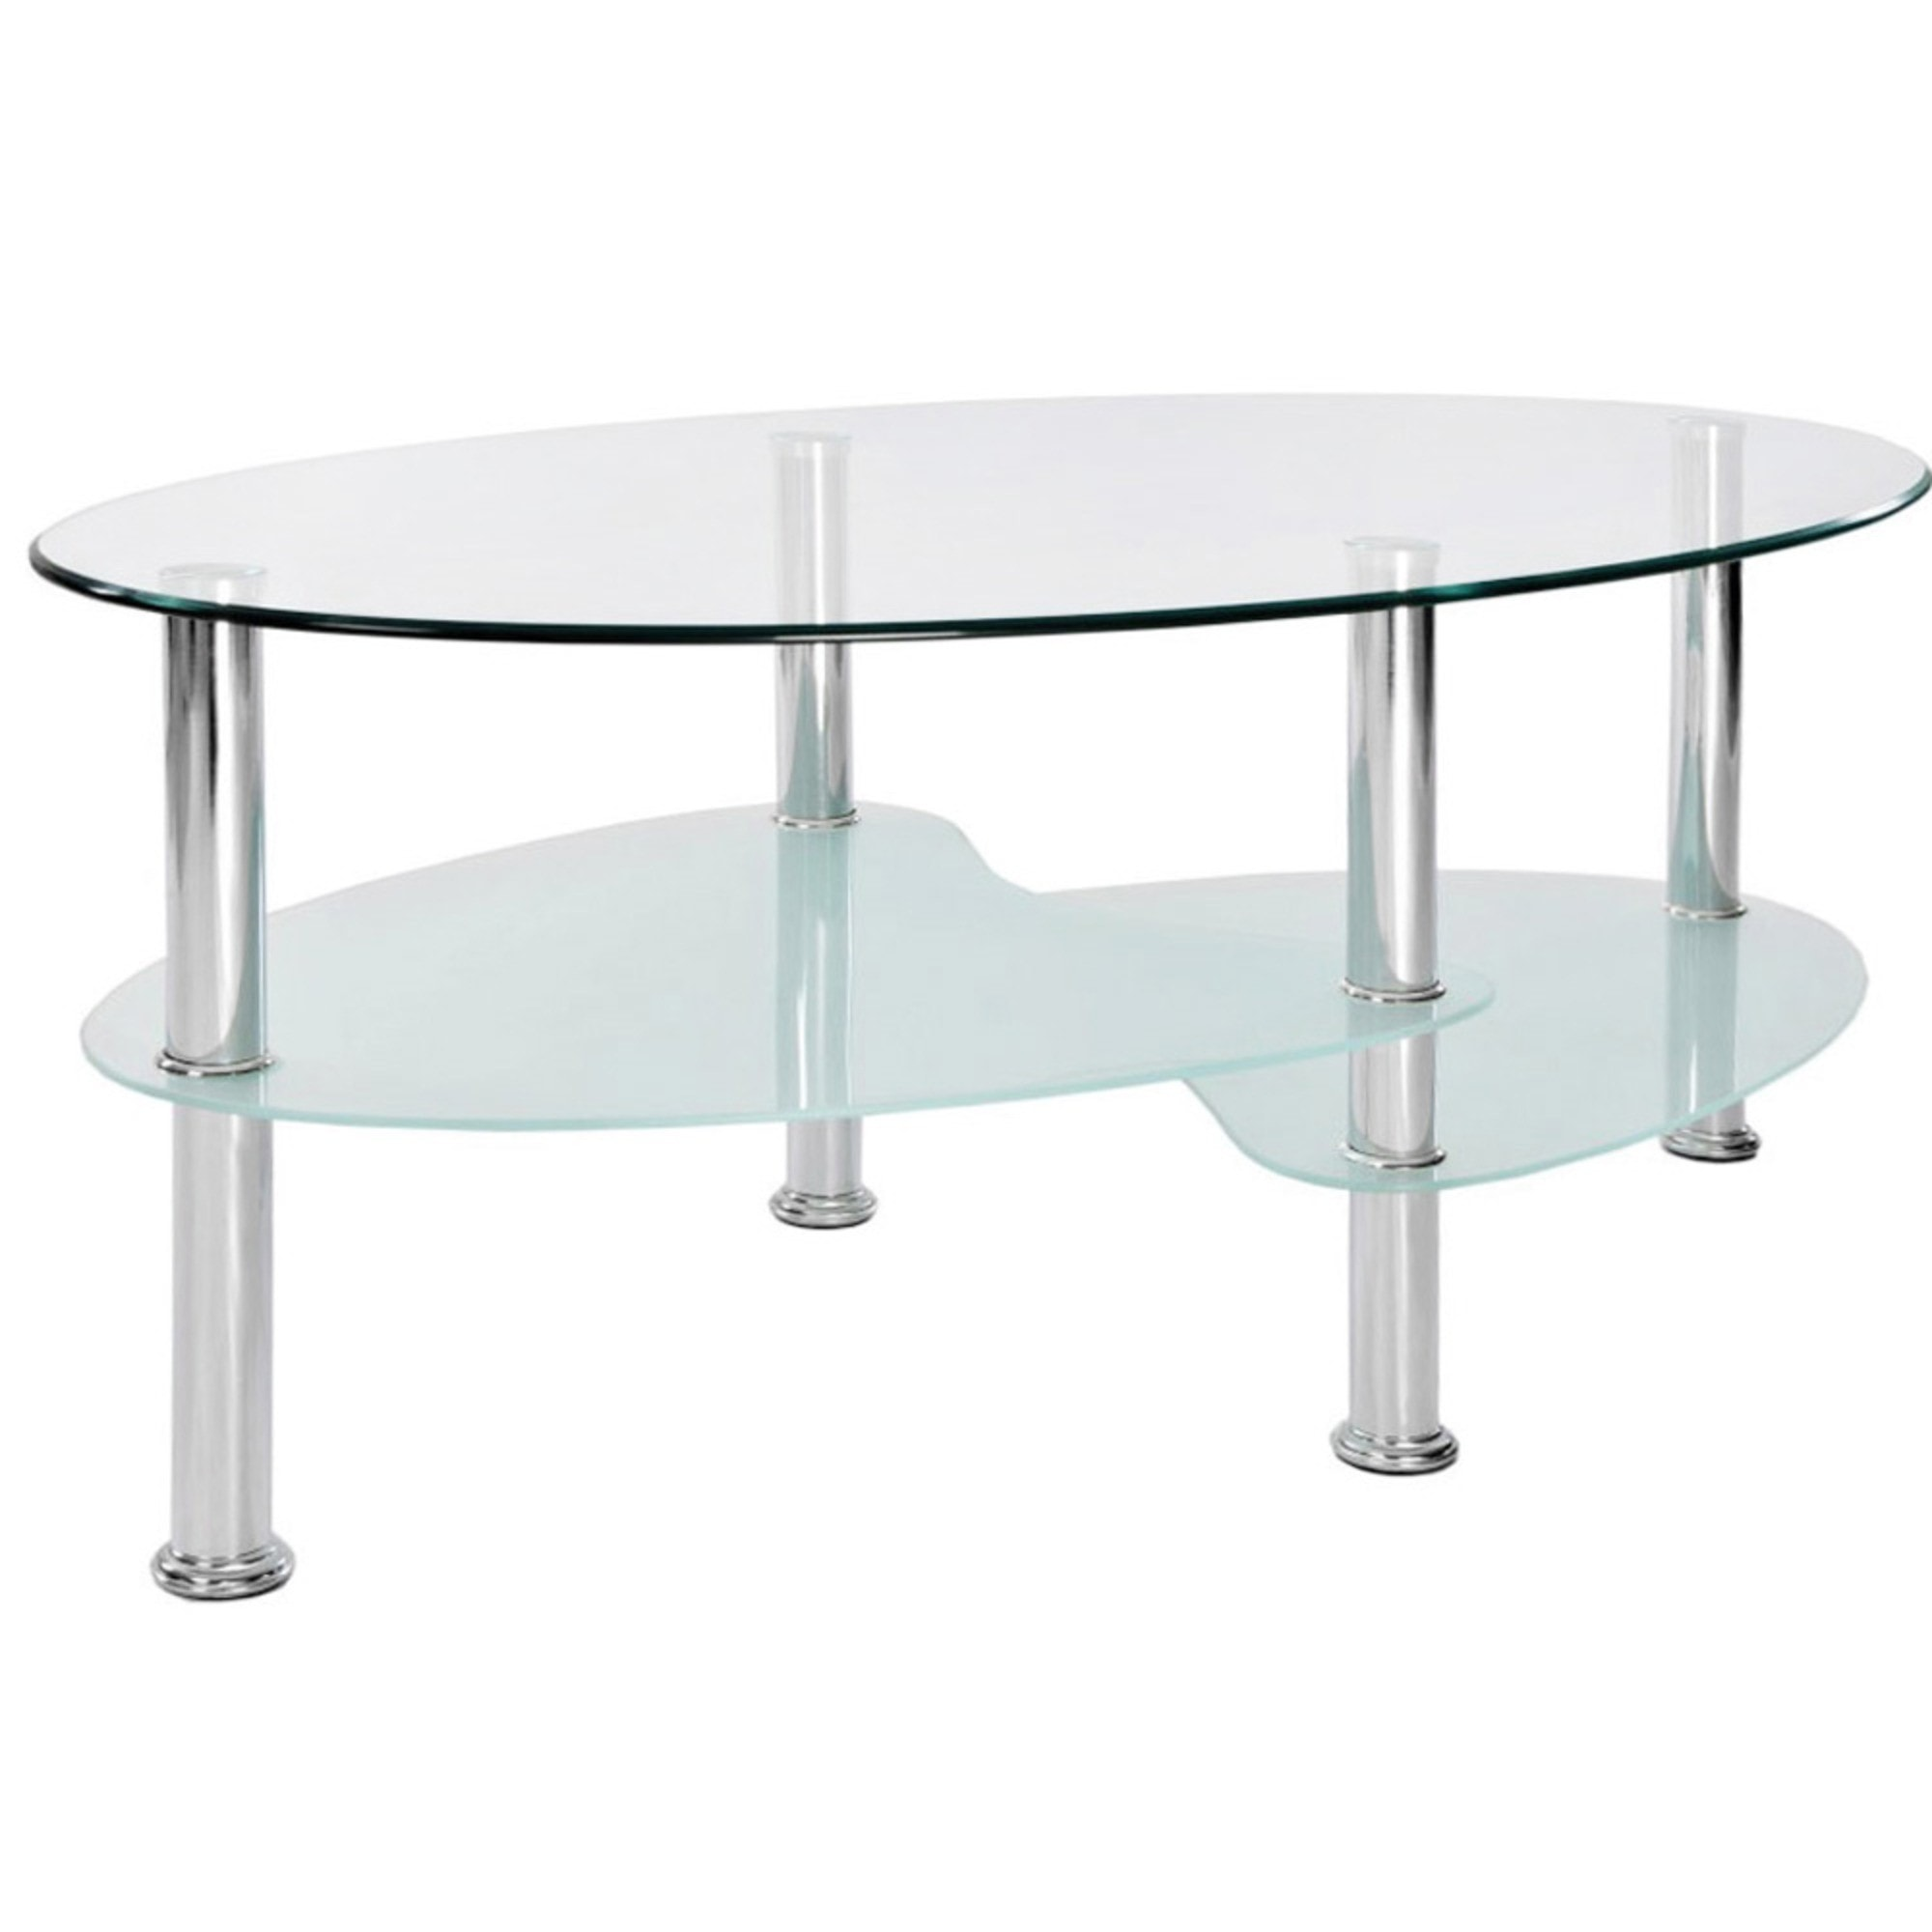 Cara Oval Frosted Glass Coffee Table